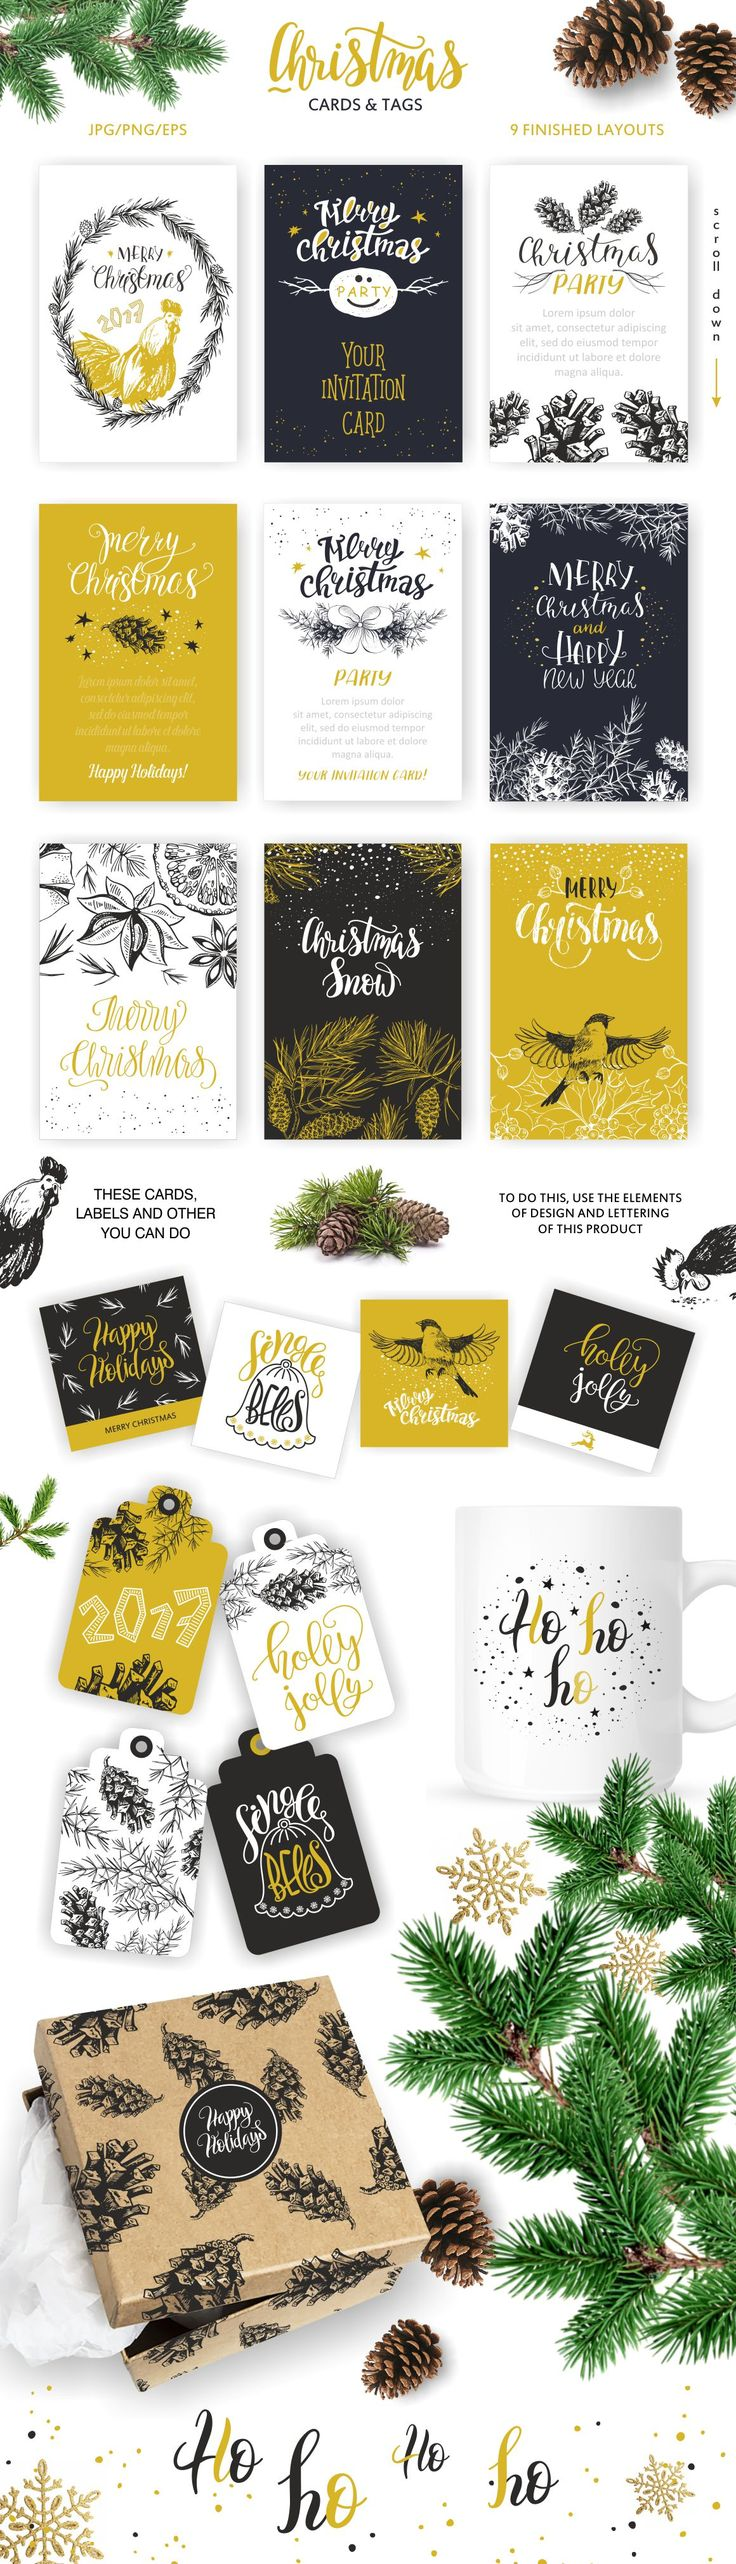 Christmas lettering & design element by OlgaAlekseenko on @creativemarket